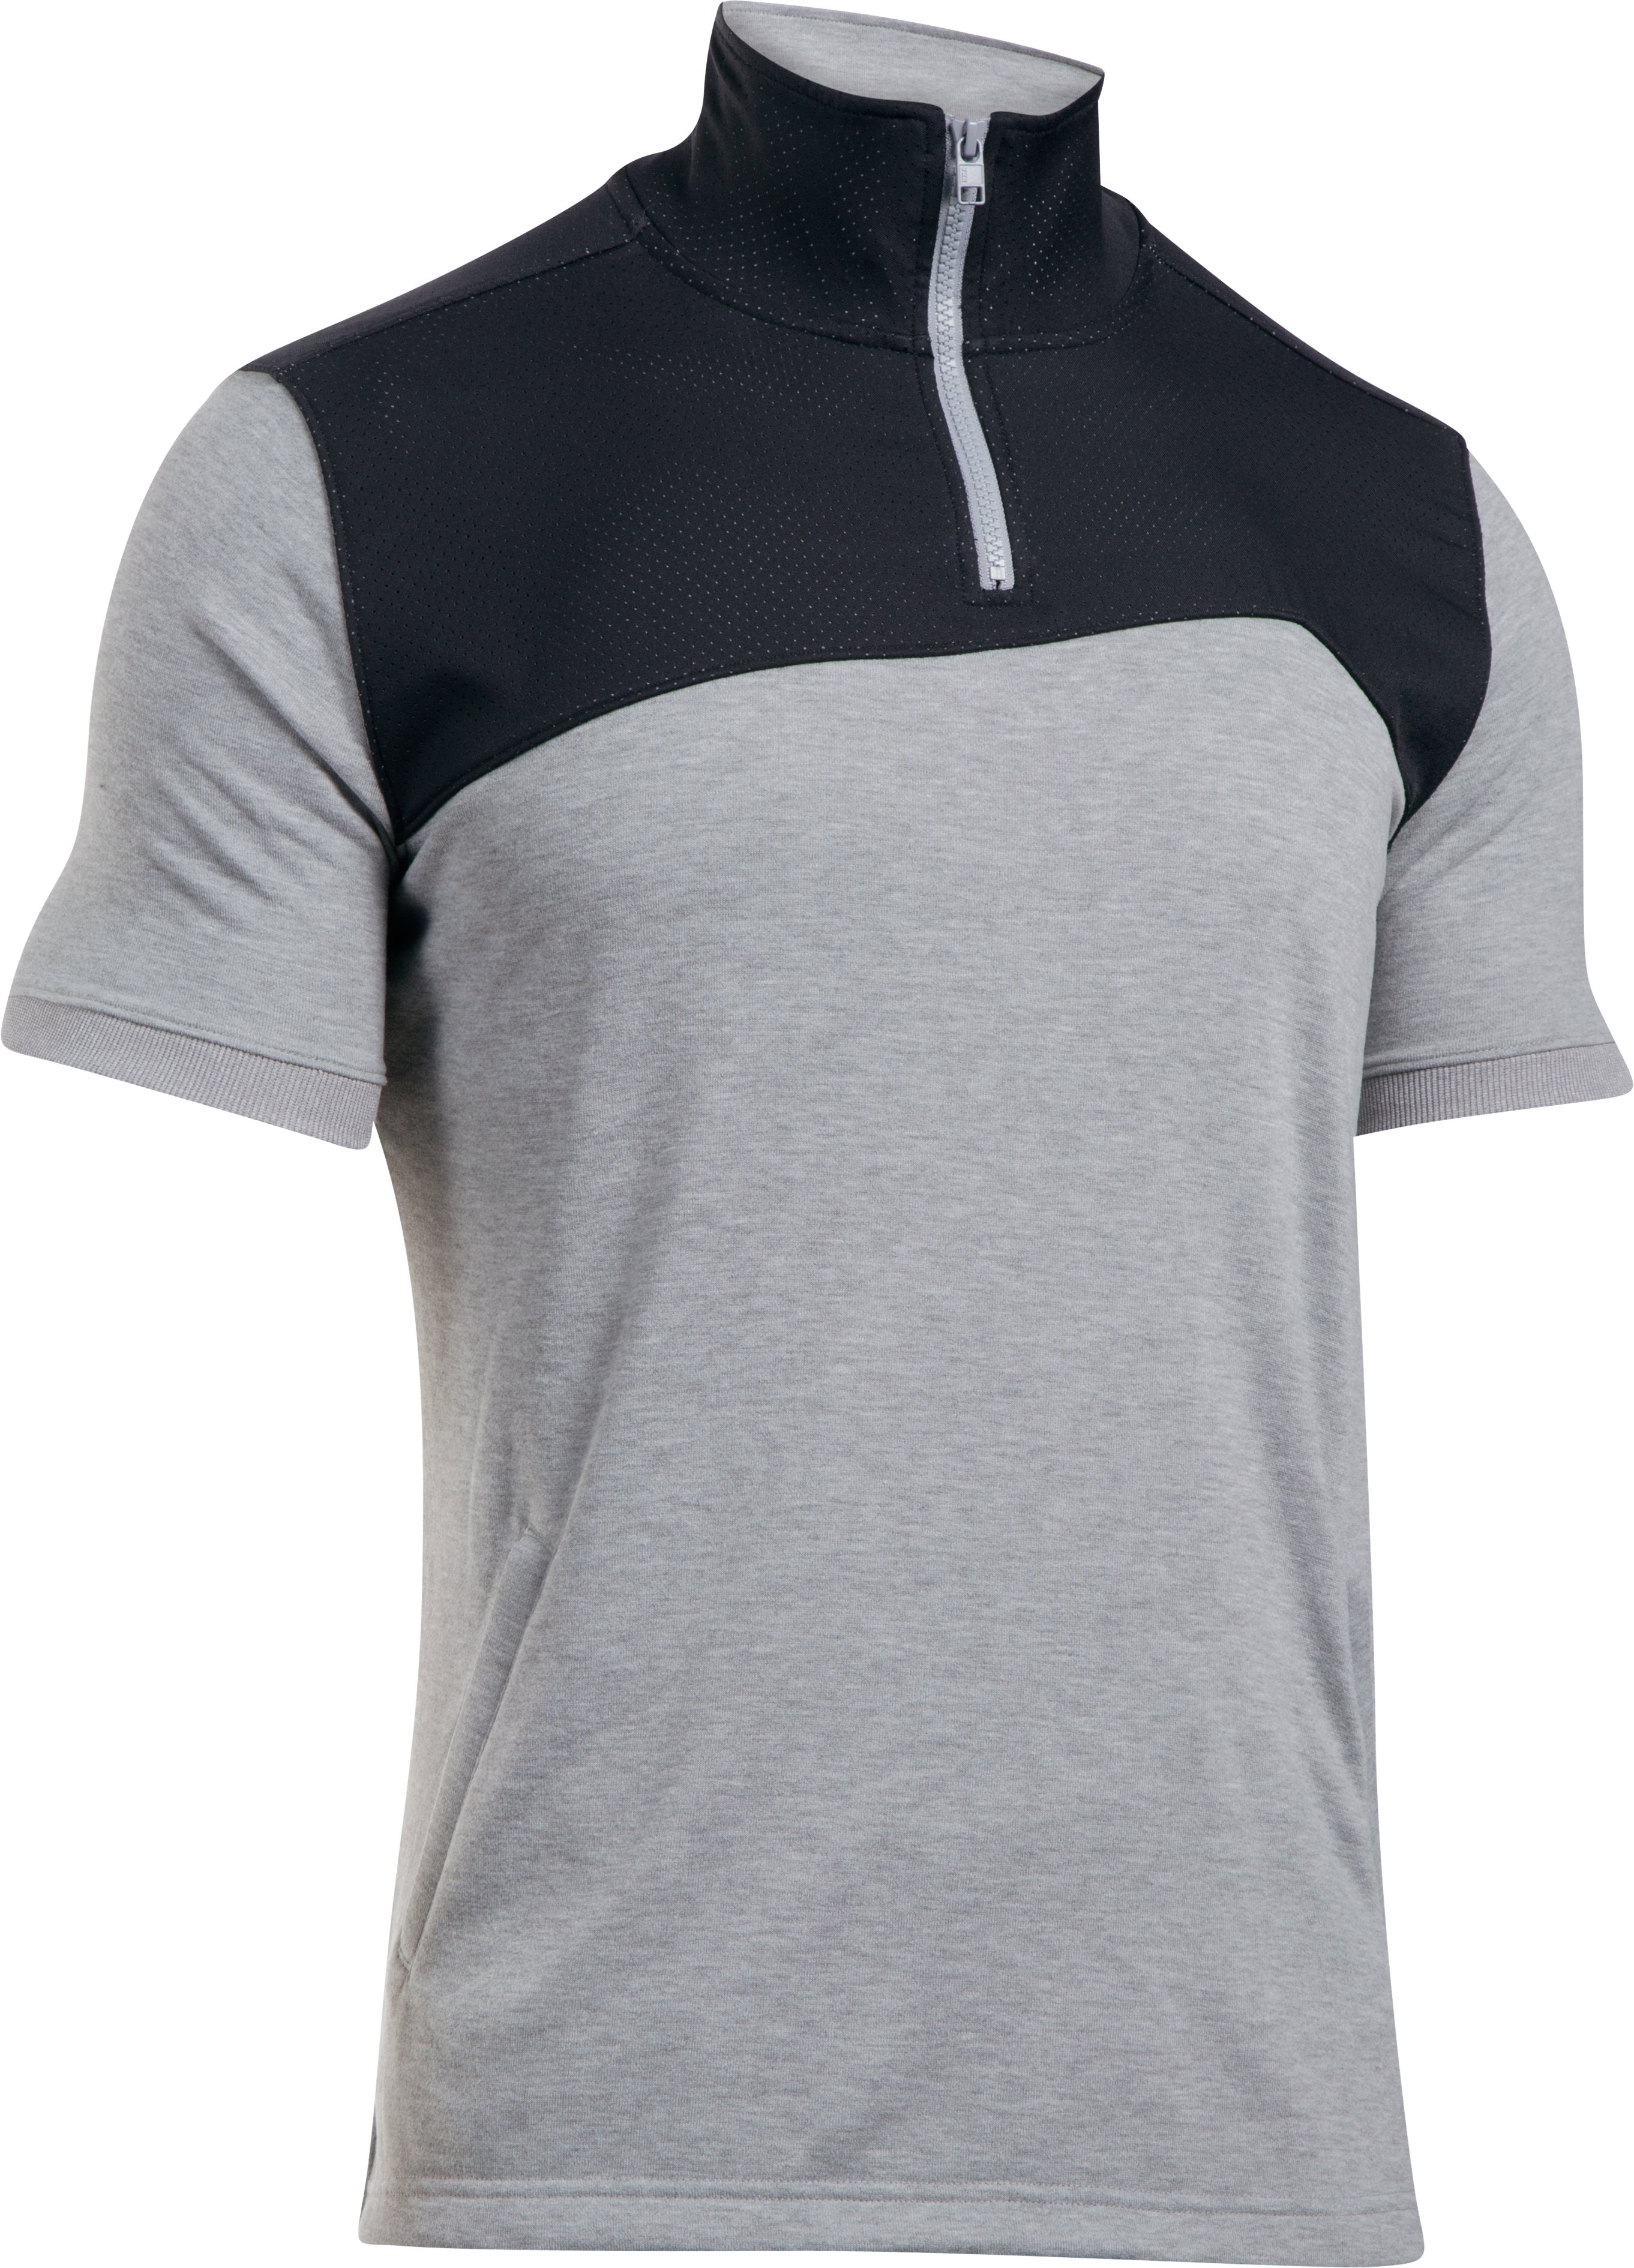 Men's SC30 Trey Area Short Sleeve ¼ Zip, True Gray Heather,